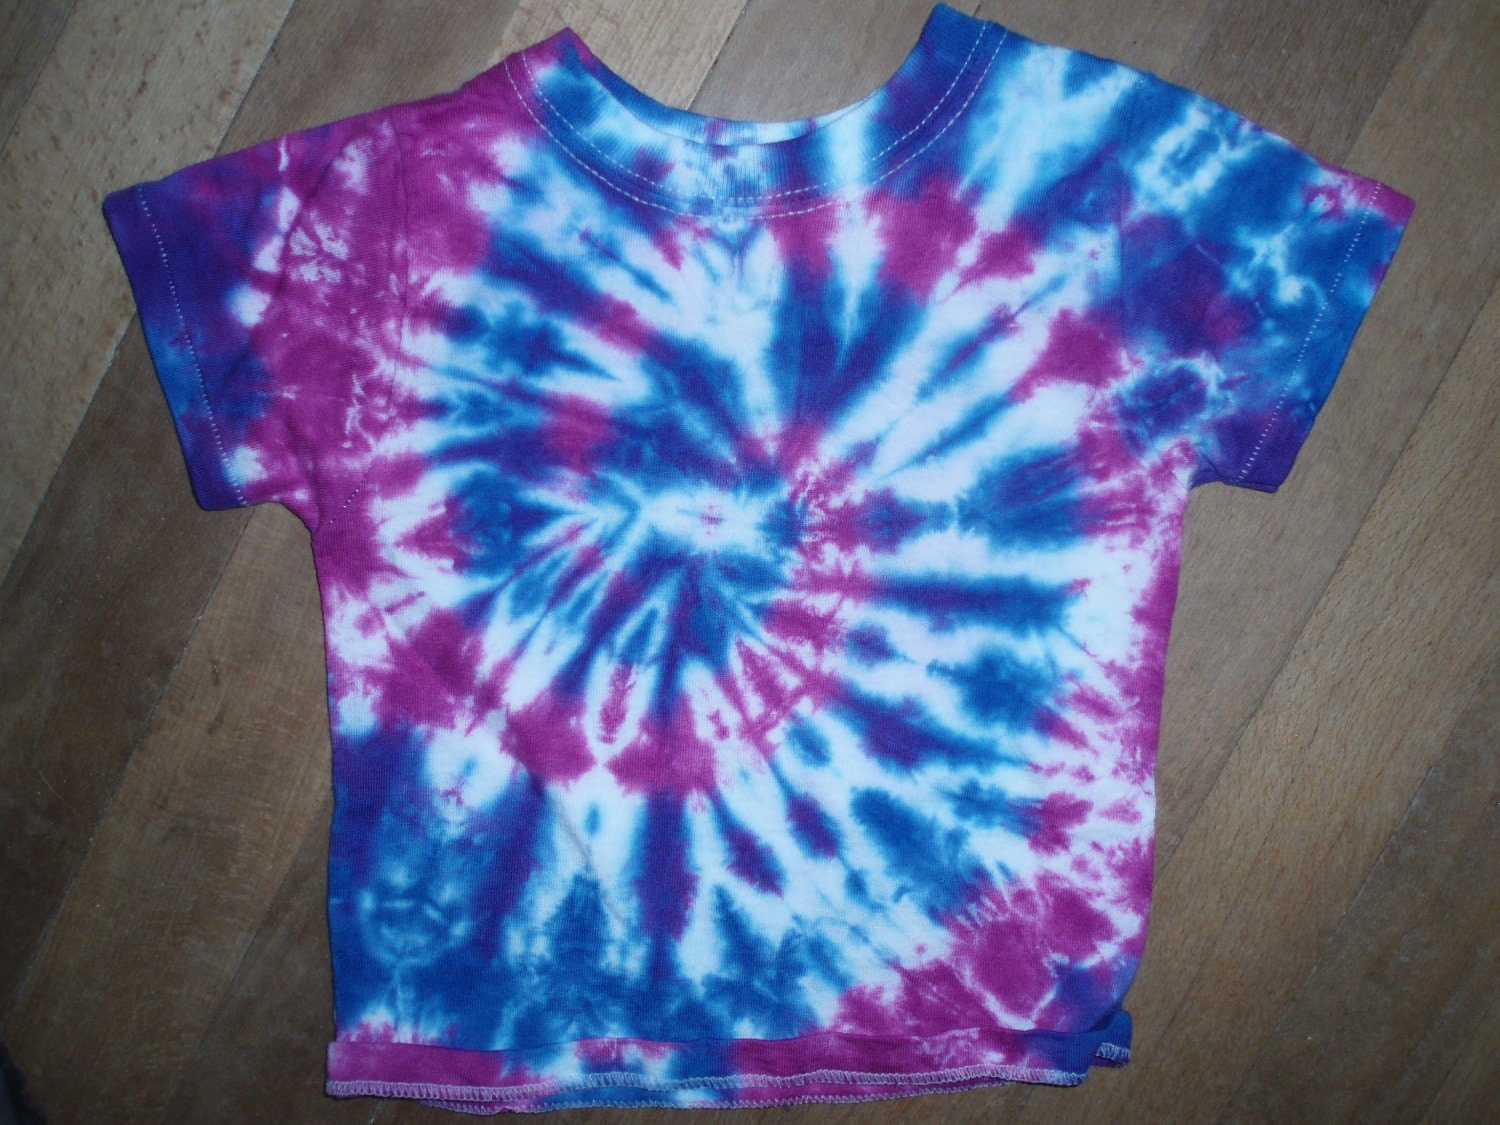 Tie Dye Toddler Tshirt Hippie Kids Clothing 12 month by selfex